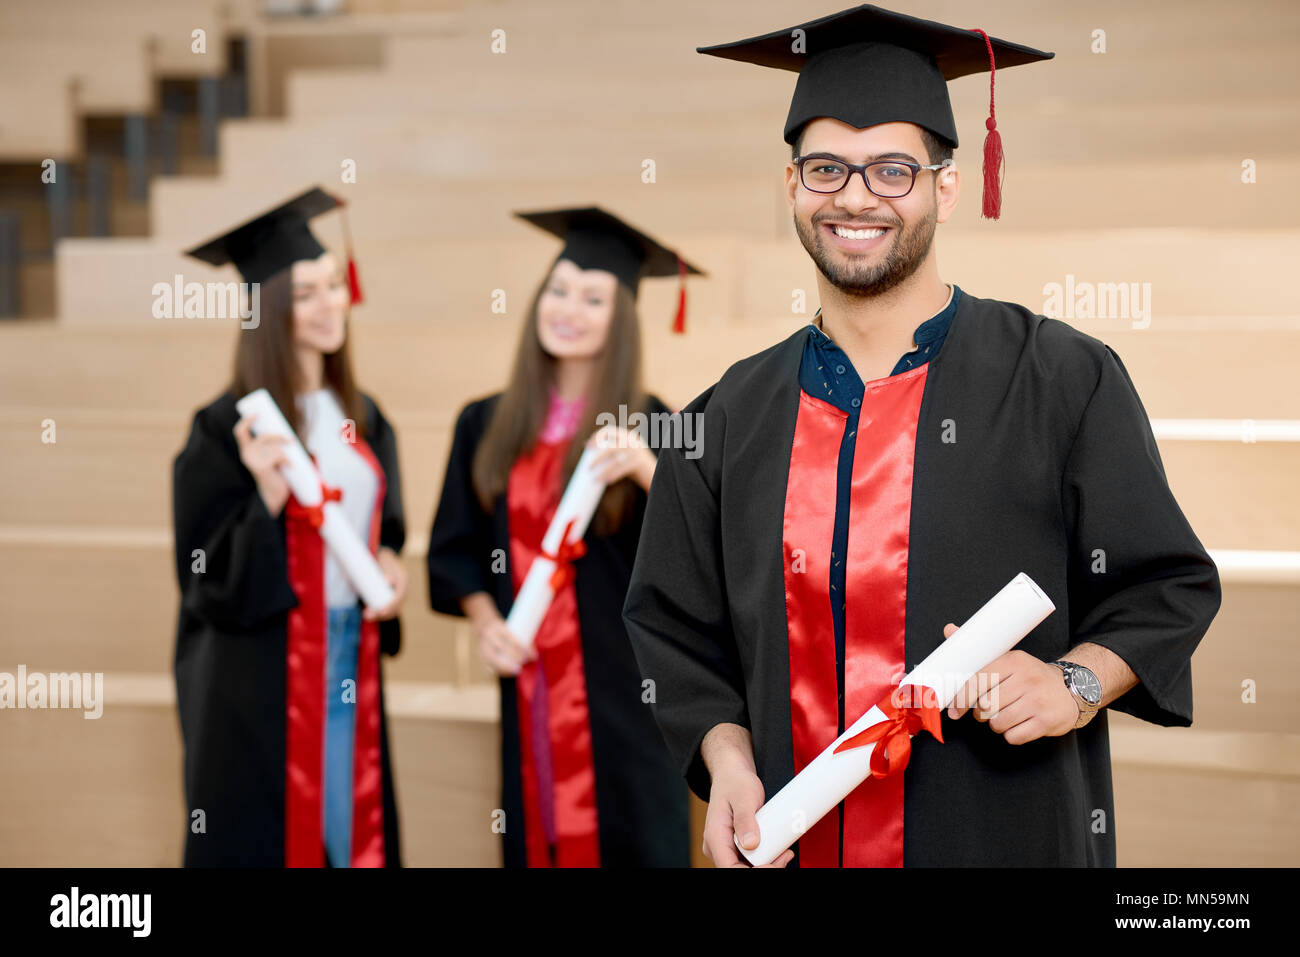 Happy smiling boy keeping university diploma. Graduate standing near young groupmates and looking satisfied. Students wearing black and red colored graduation gowns. Ending university. - Stock Image